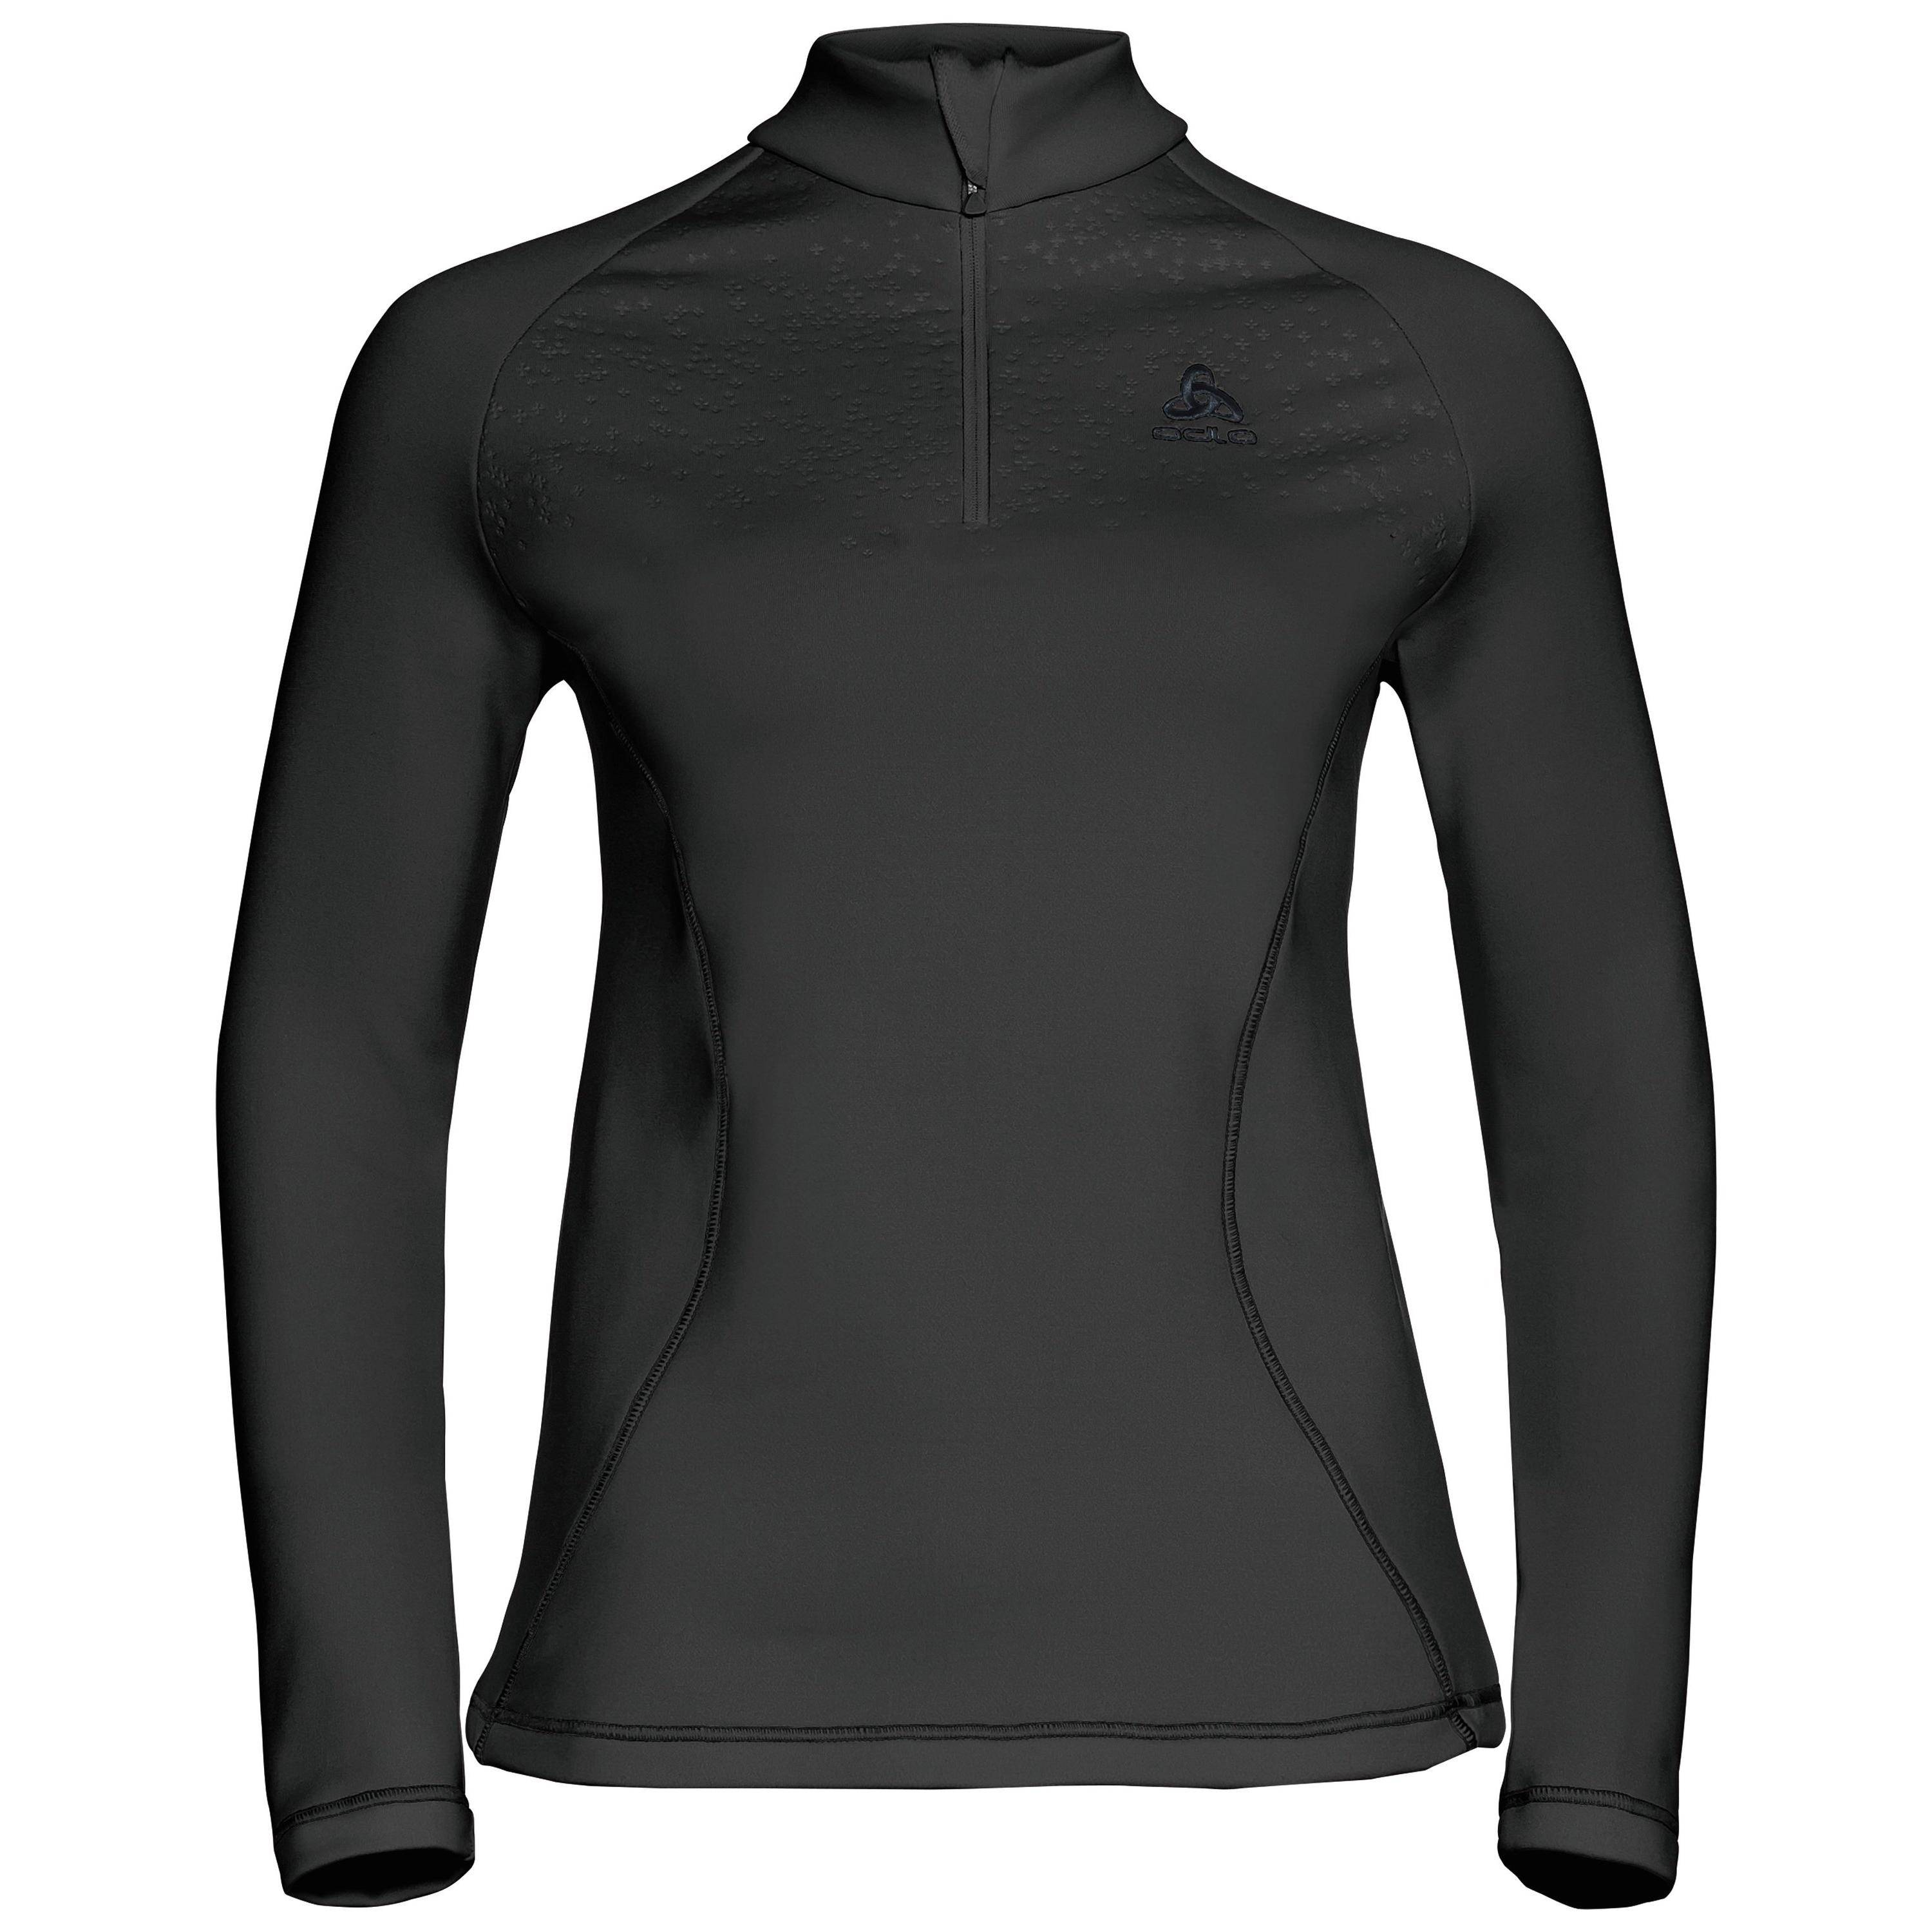 Odlo Pull couche intermédiaire 1/2 zip GLADE black with print FW17 taille: XL